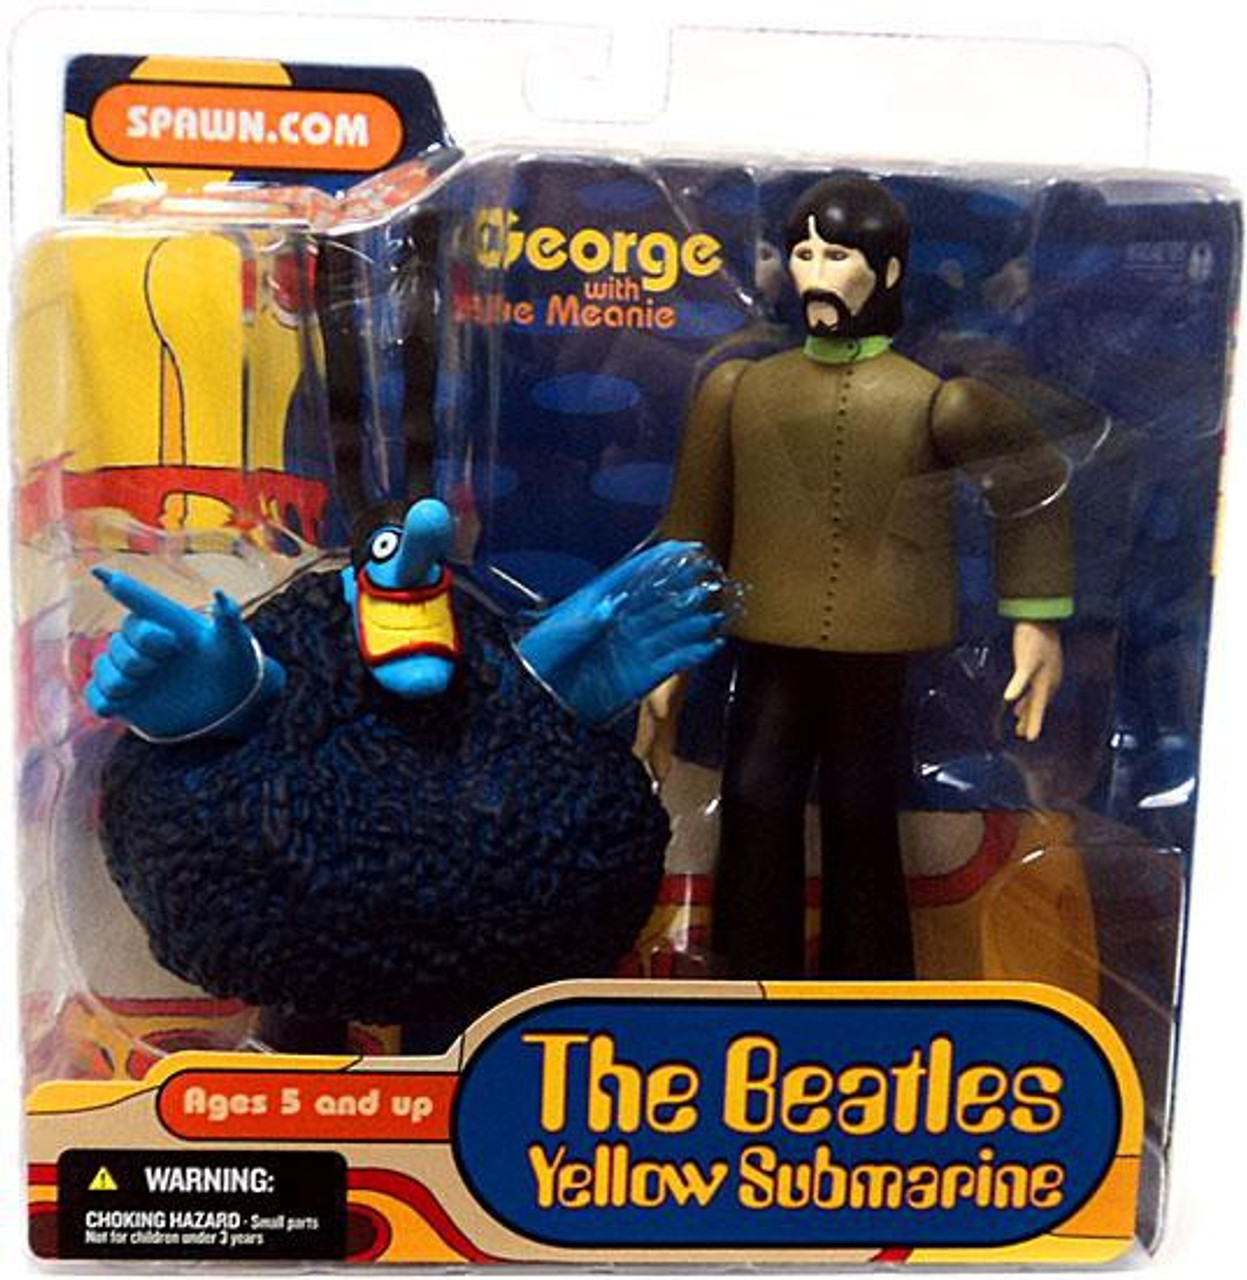 McFarlane Toys The Beatles Yellow Submarine Series 1 George with Blue Meanie Action Figure